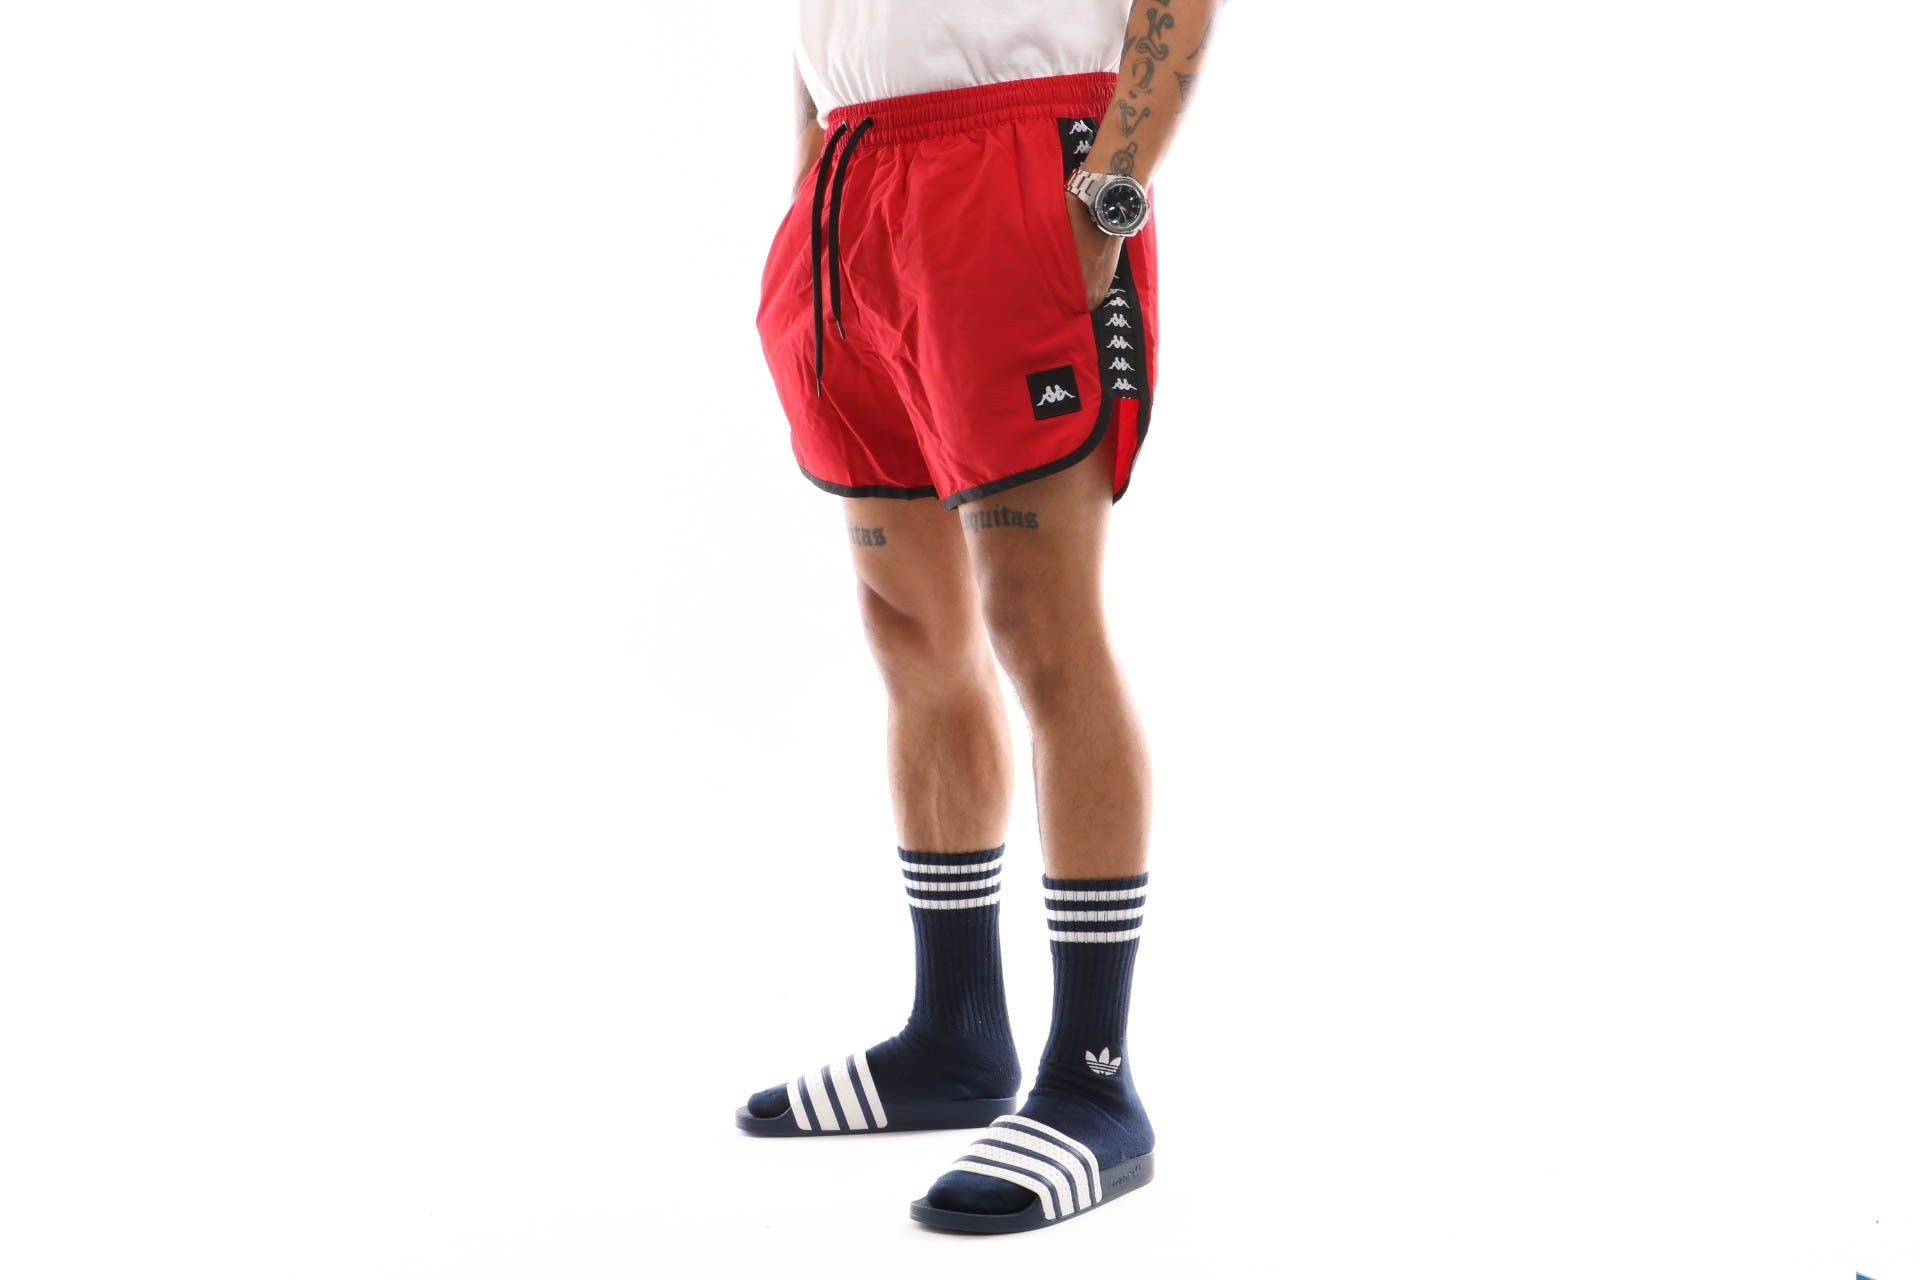 Afbeelding van Kappa Authentic Agius 303Wh90-998 Swimshort Red-Black-White